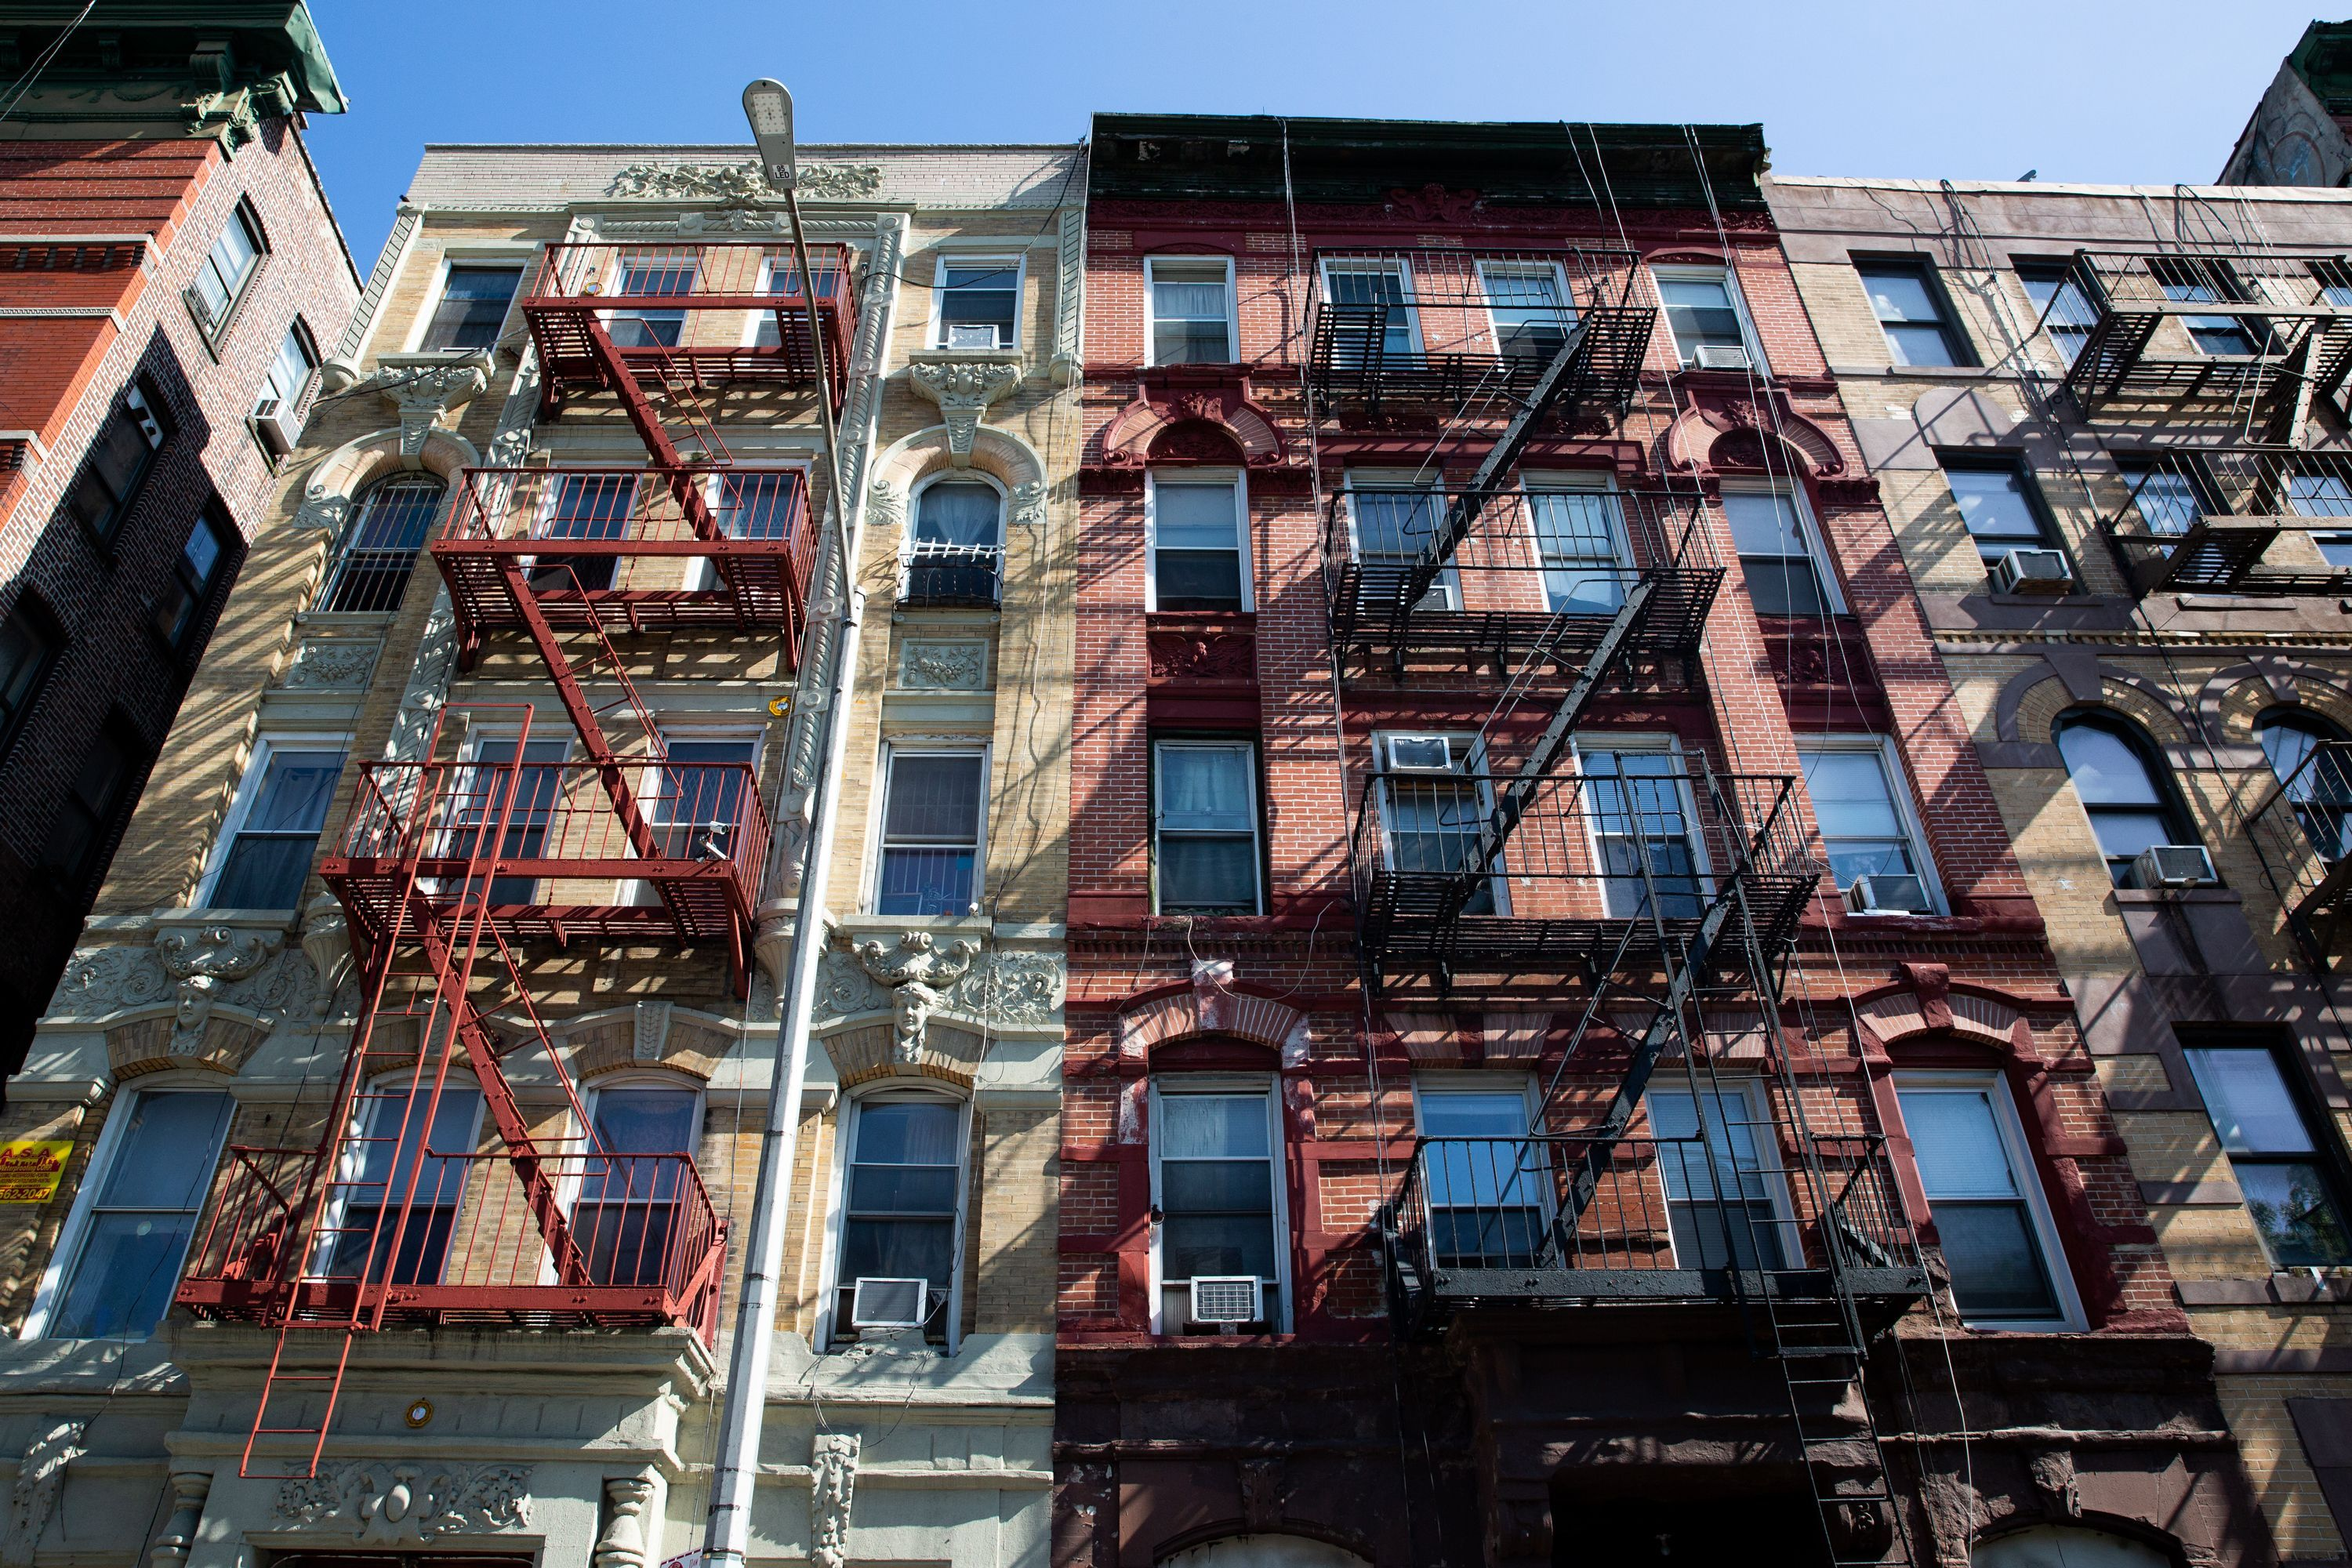 A row of buildings with rent stabilized units on Henry Street in the Lower East Side.